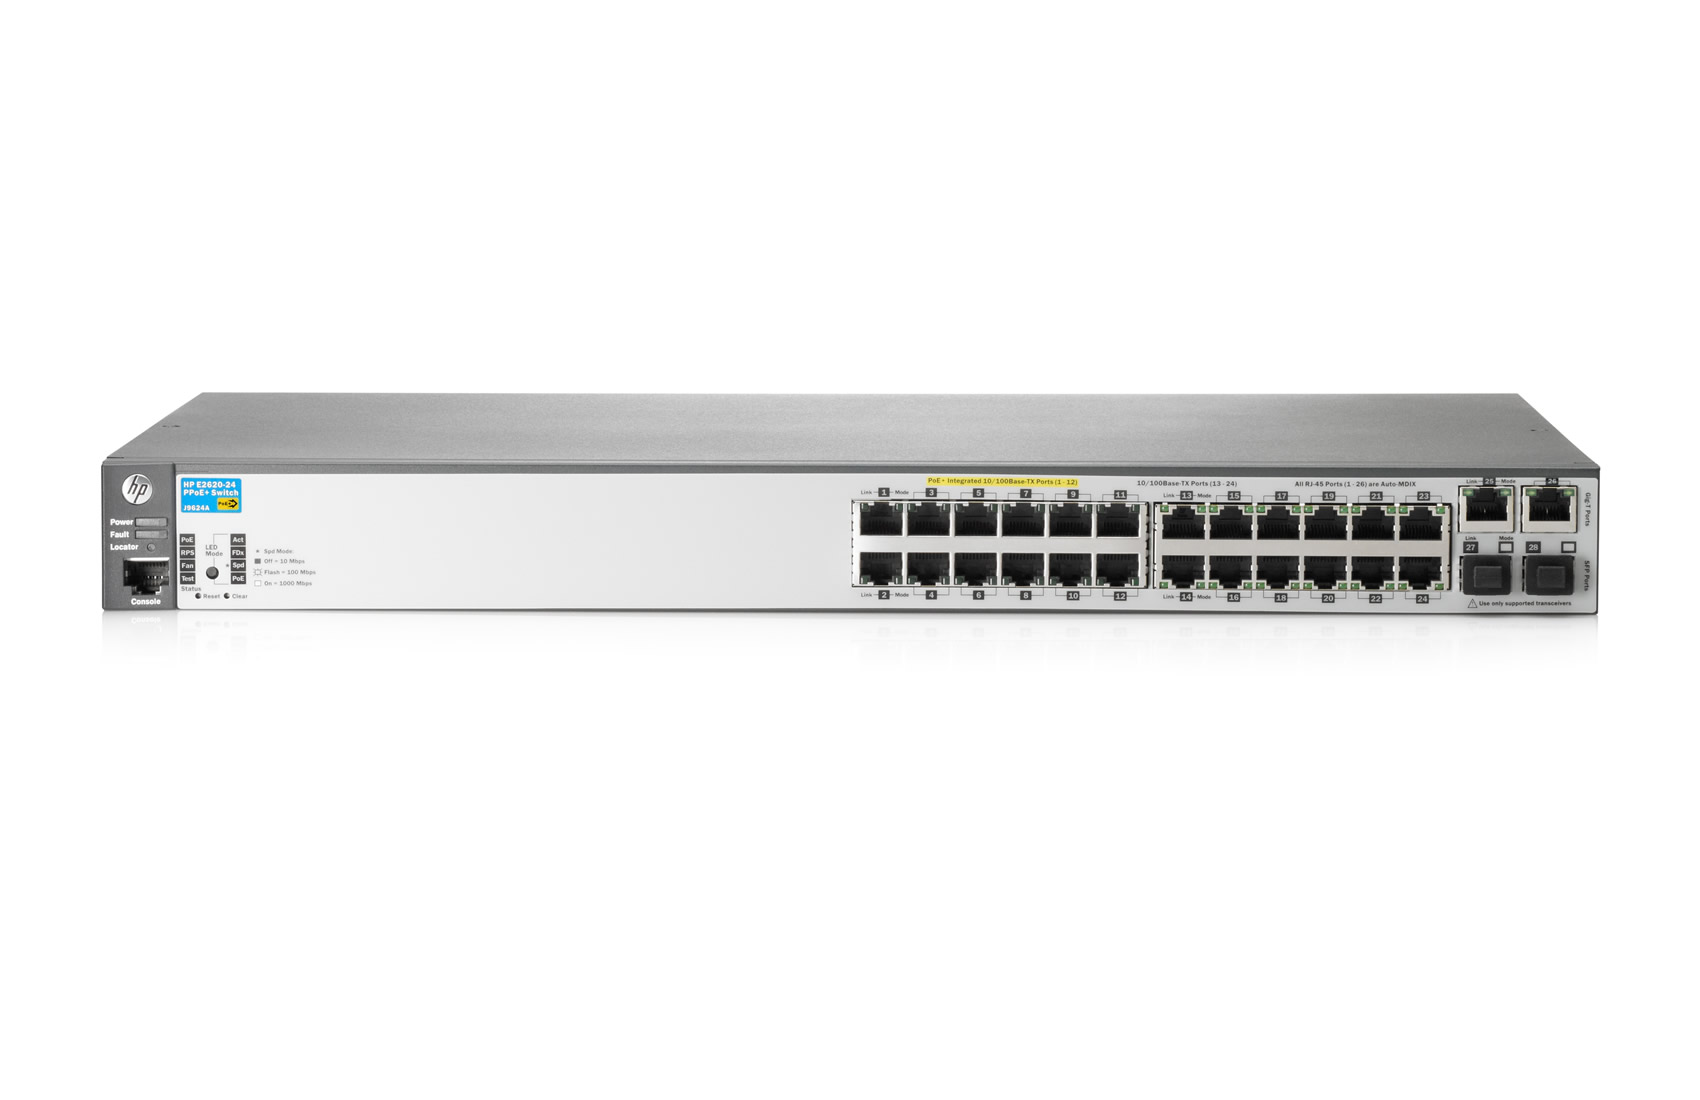 Hp Procurve Switch Vpn Free And Proxy Howto Vlan Configuration On 2810 Hpe E4500 24g Poe Product Details